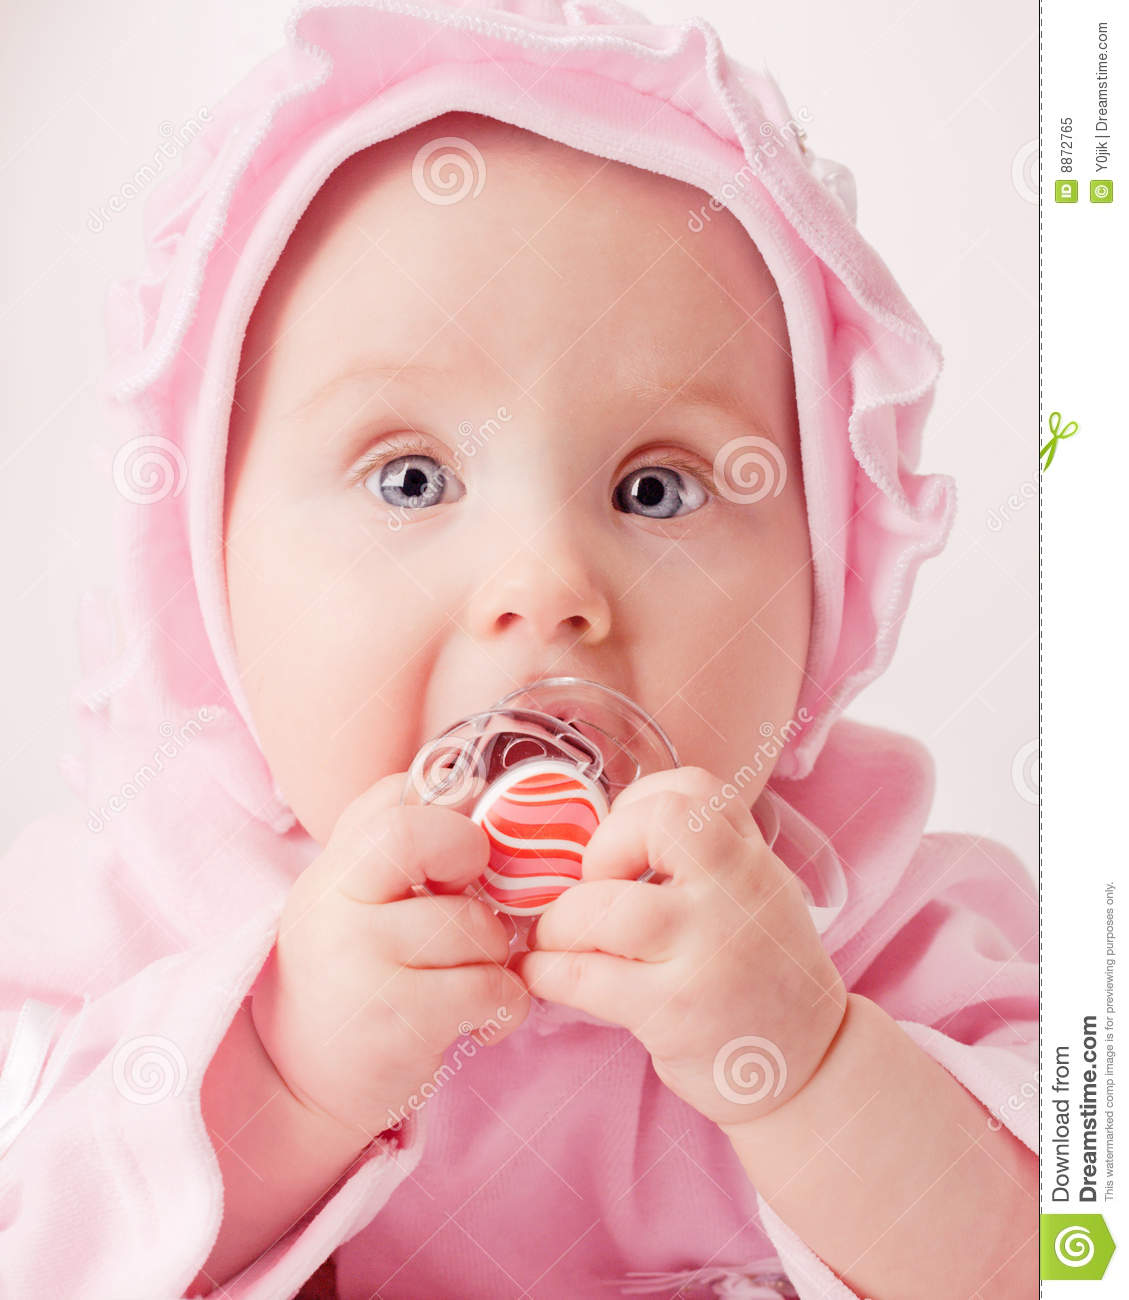 3-Month-Old Baby Using Breast as Pacifier - How To